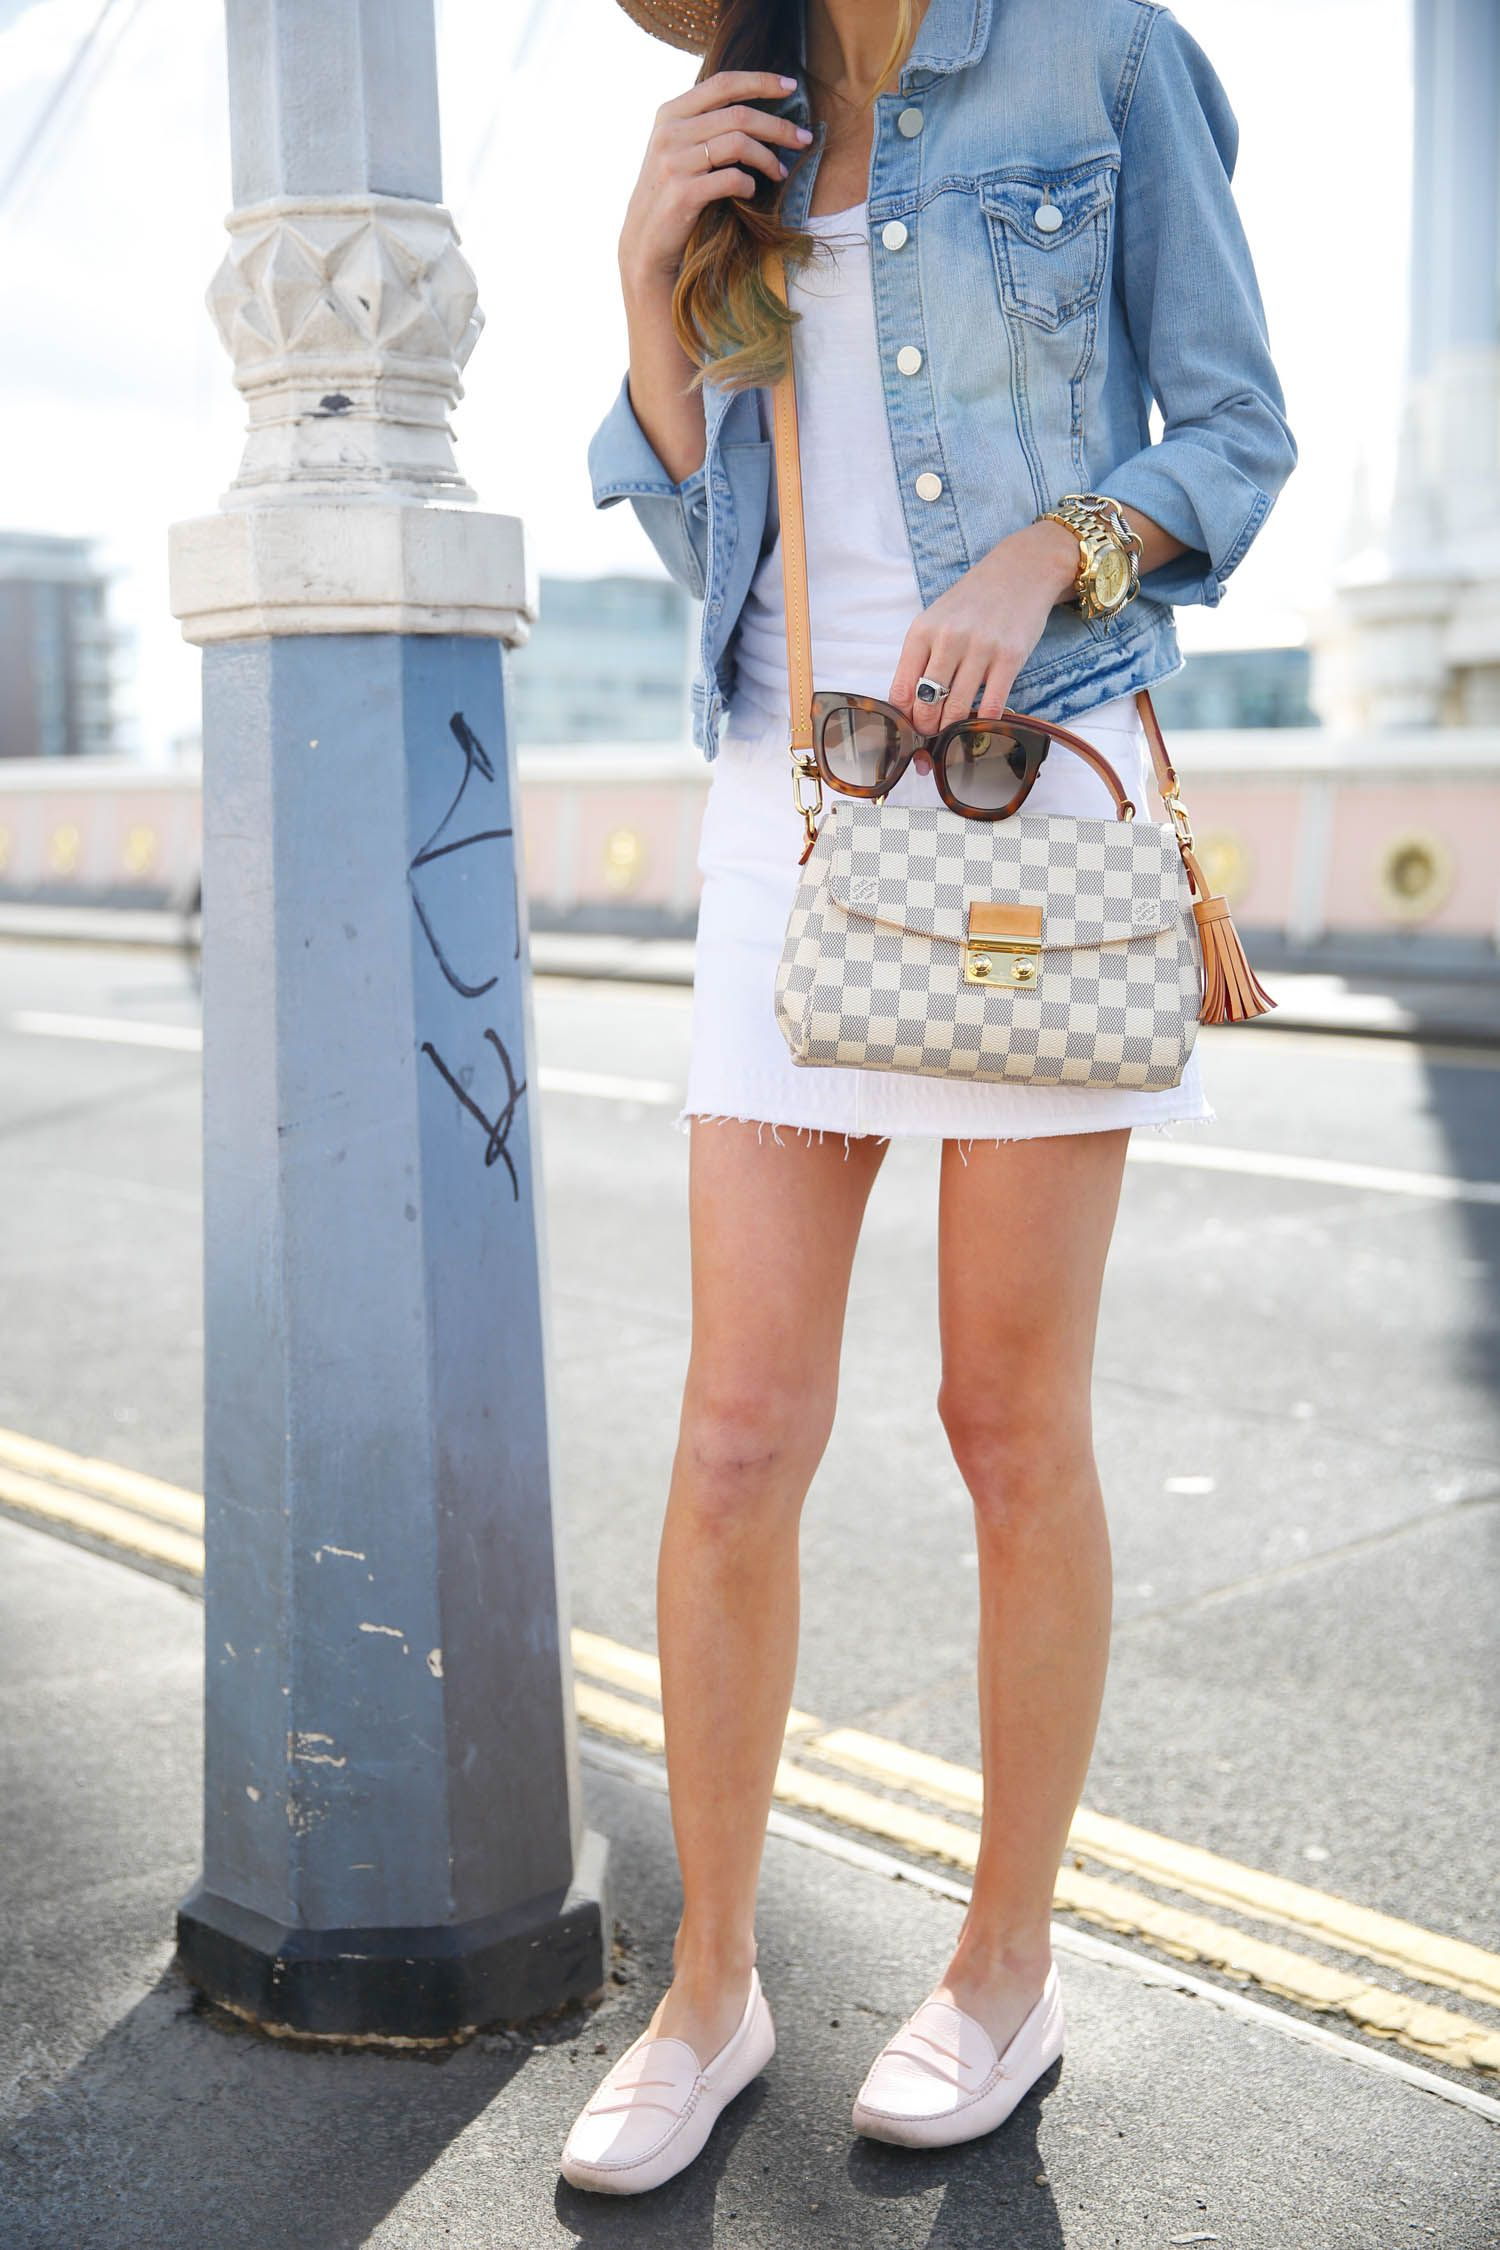 Affordable Outfit For Travel + Exploring in London #louisvuittonhandbags